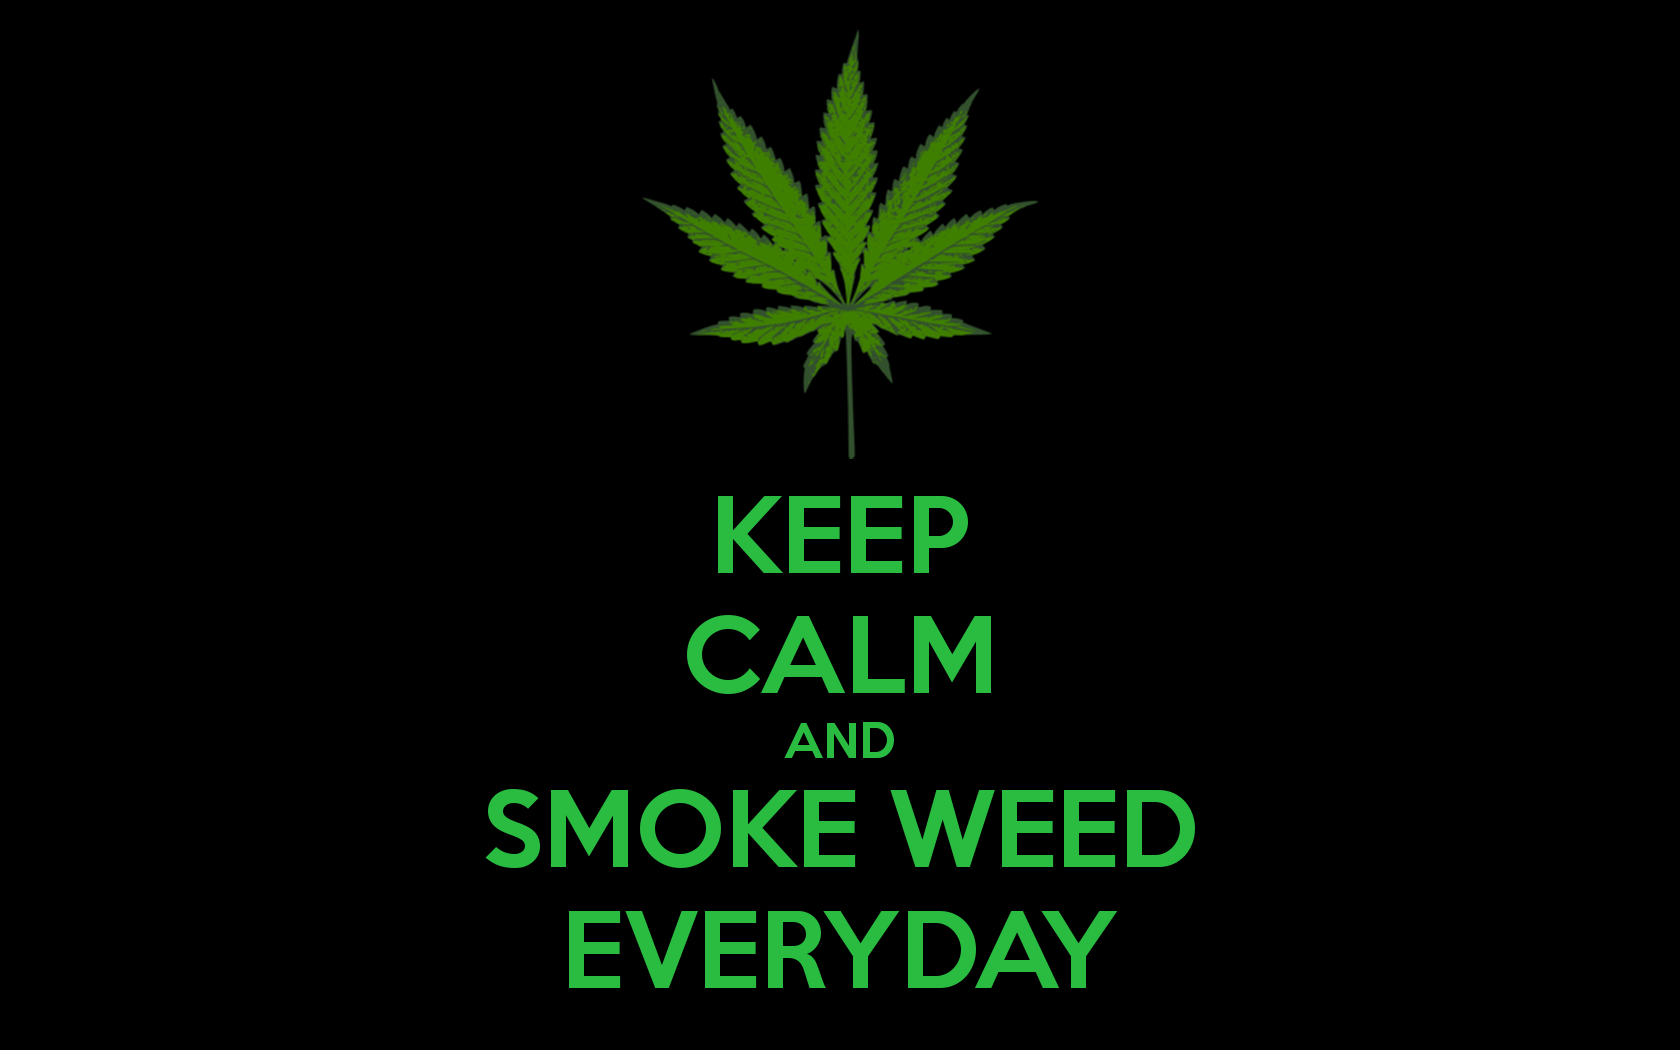 Weed HD Wallpapers Group 74 Keep Calm